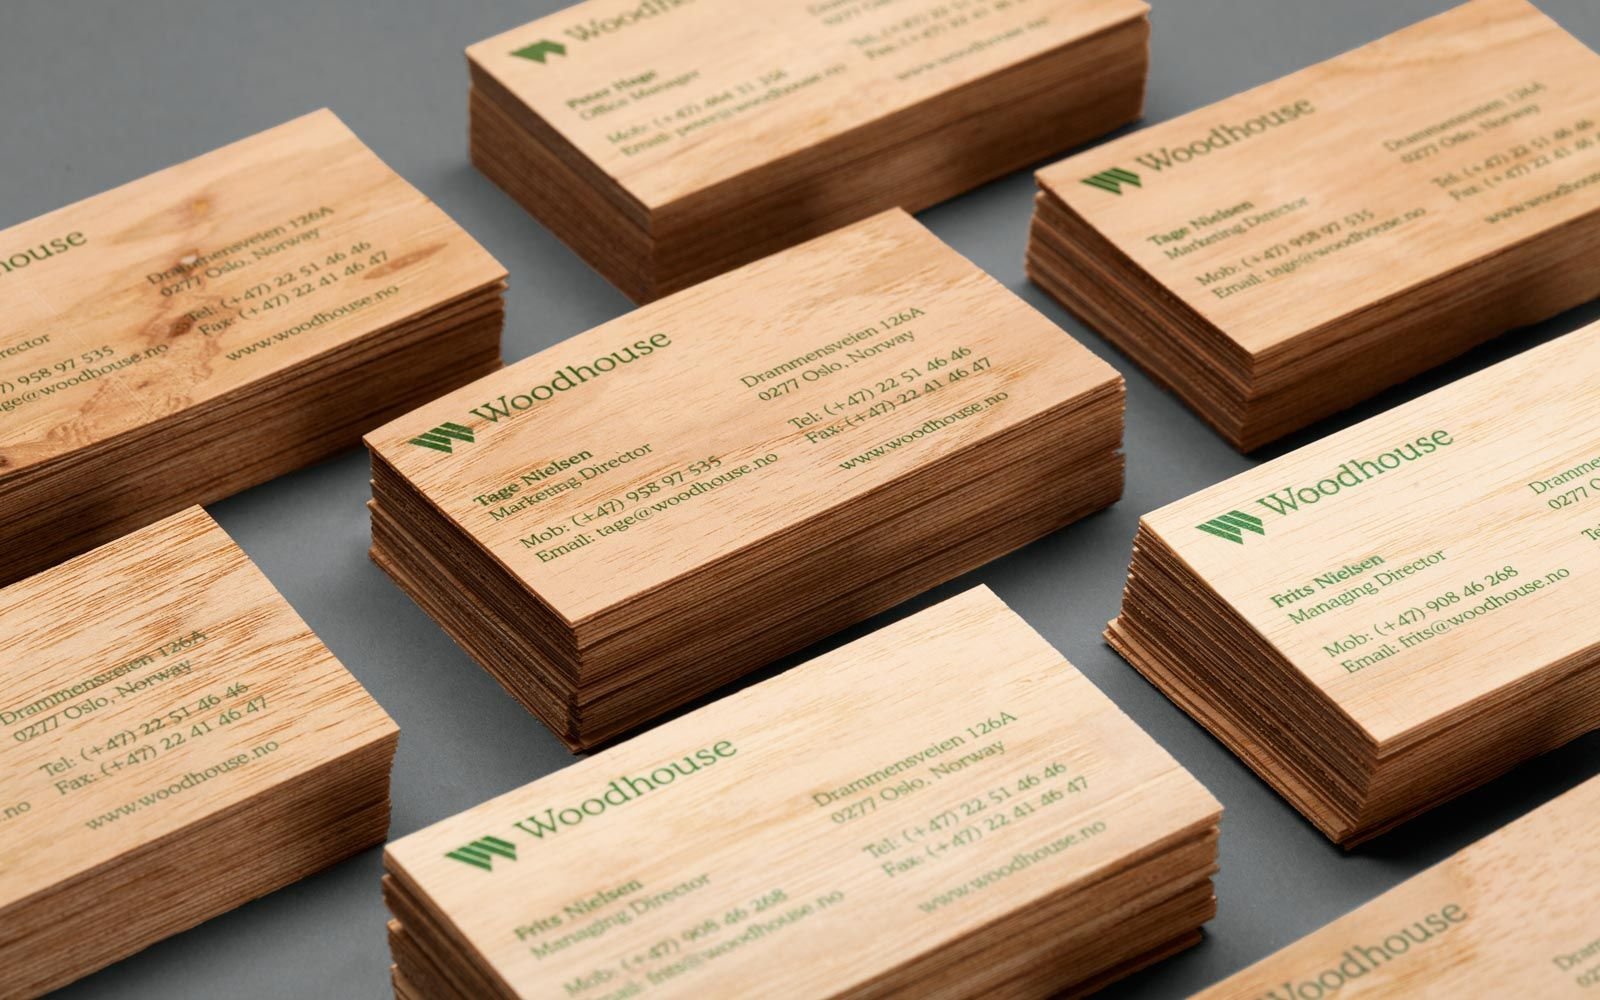 Woodhouse represents suppliers to buy and to sell timber, boards ...